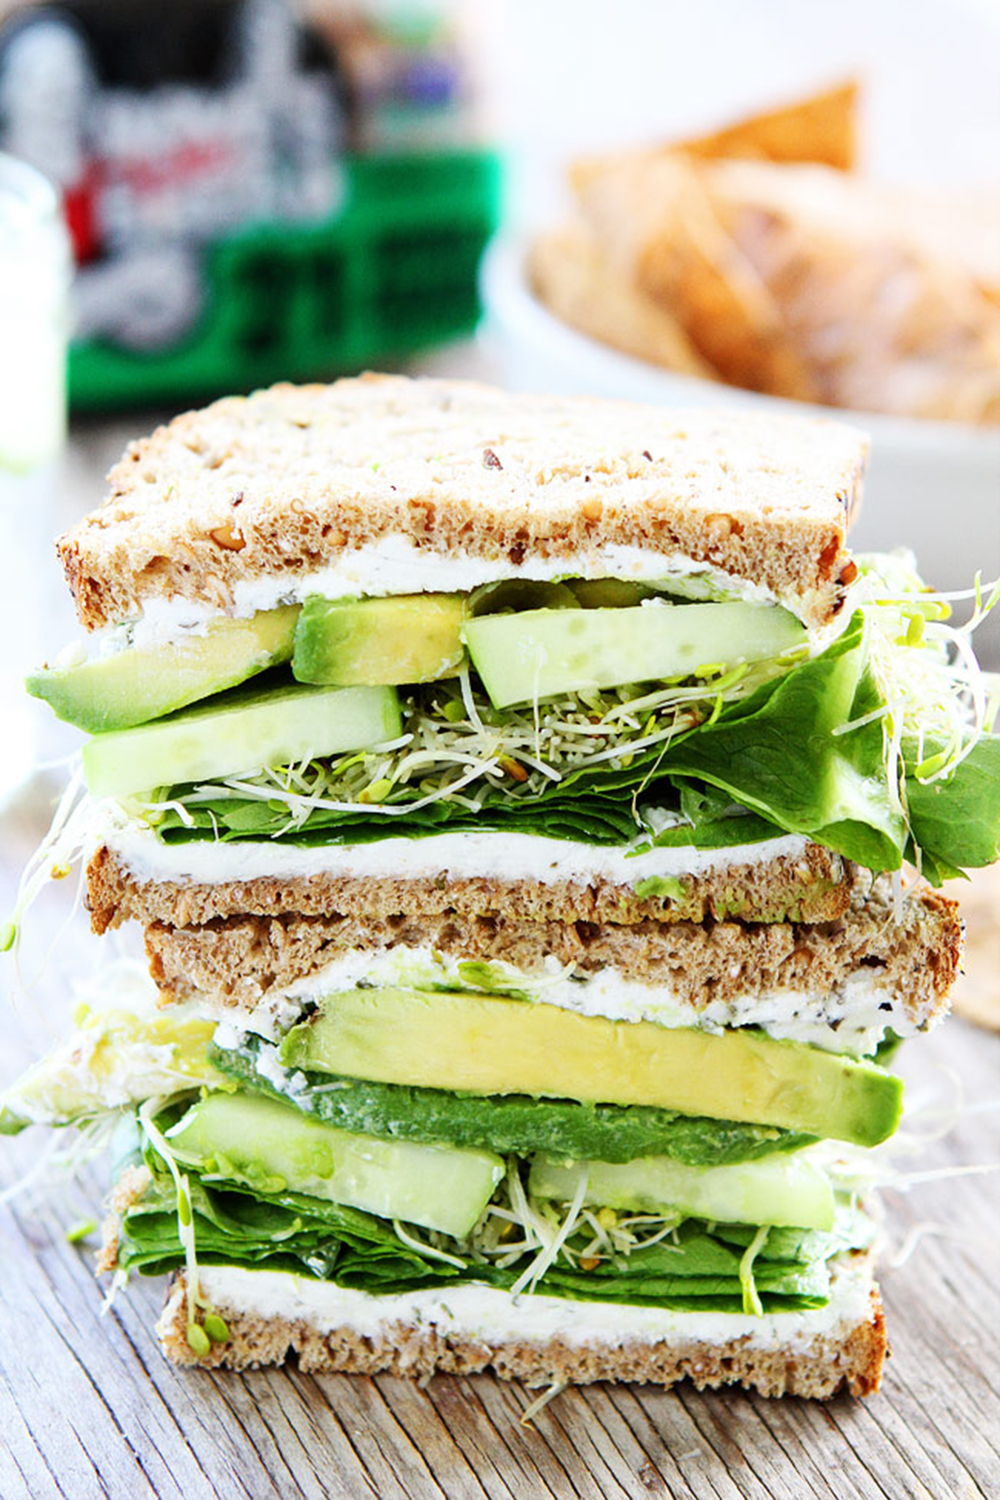 4 Cucumber-and-Avocado-Sandwich-6.jpg